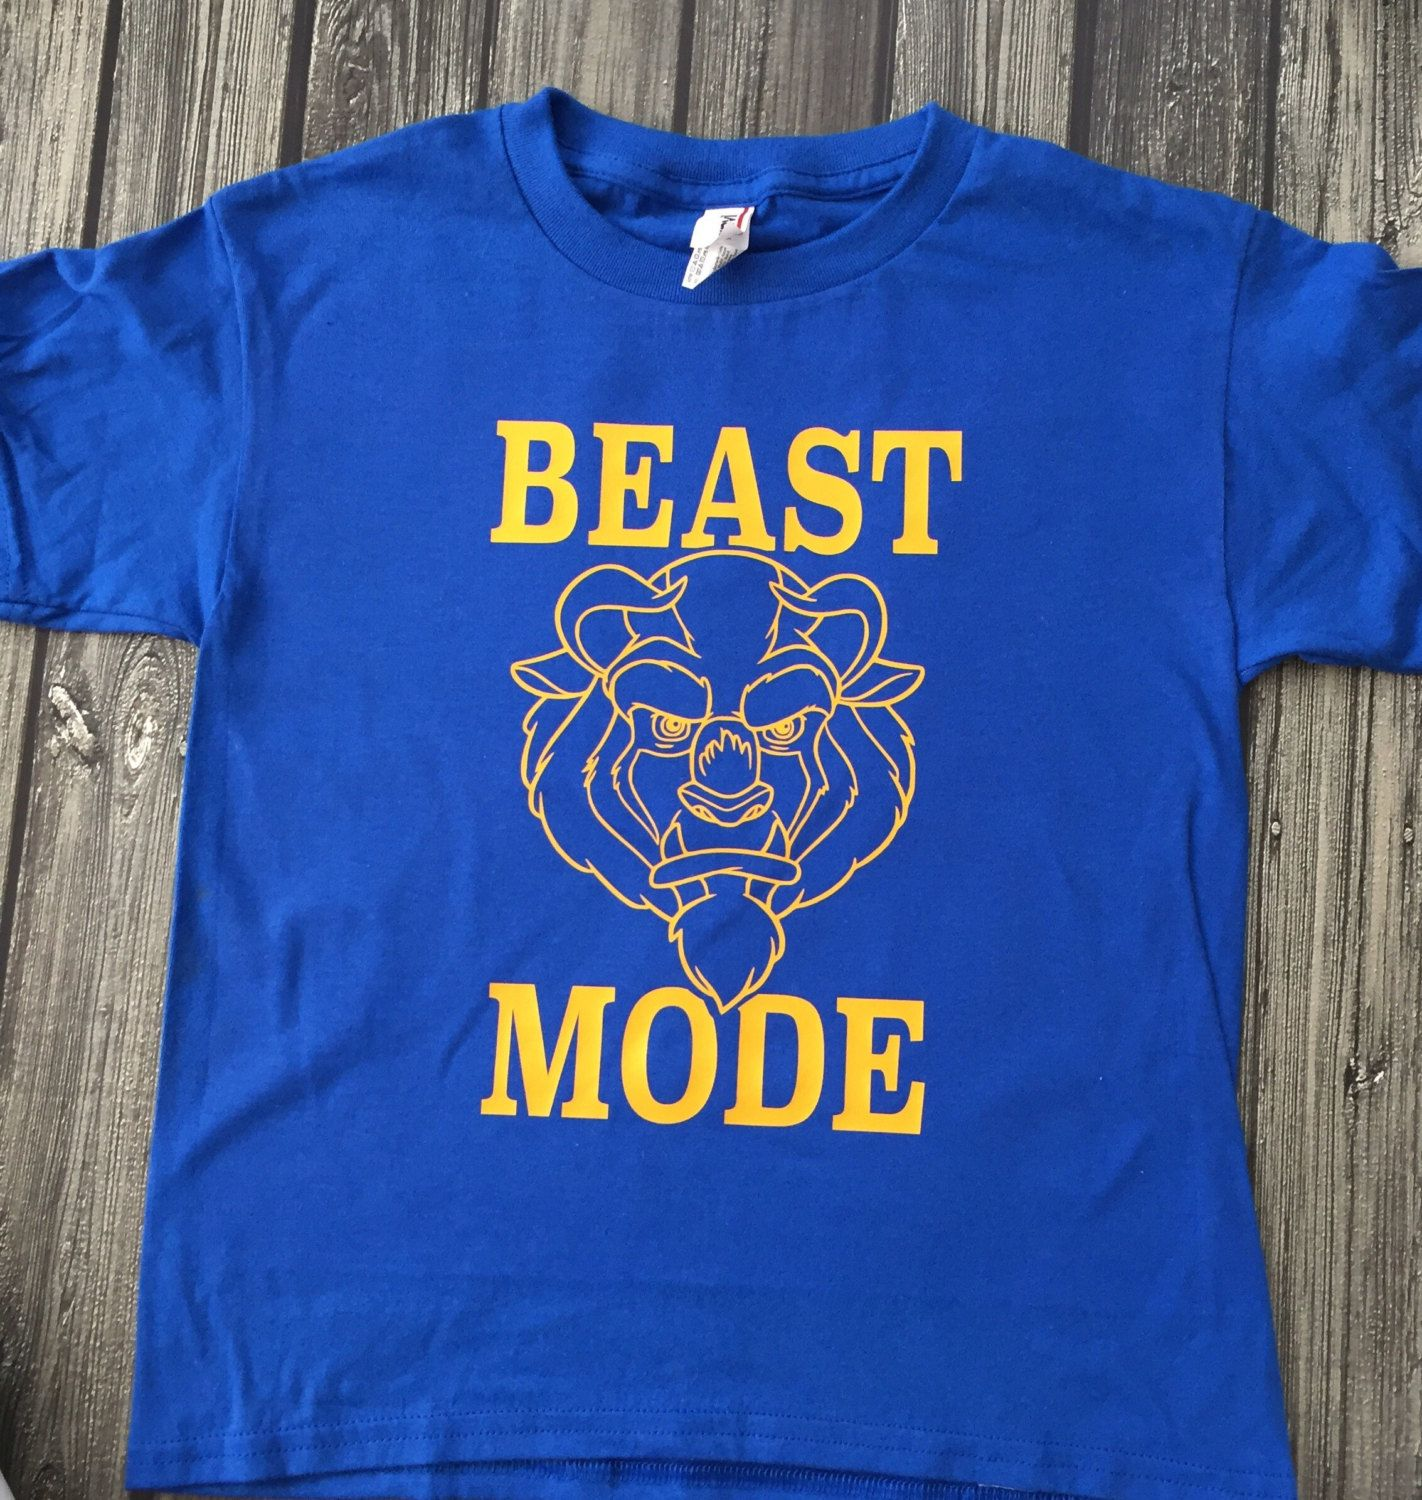 f5e2928f0 A perfect shirt for a Beauty and the Beast theme event or trip. This makes  a great father and son set for family shirts to Walt Disney world or  Disneyland!